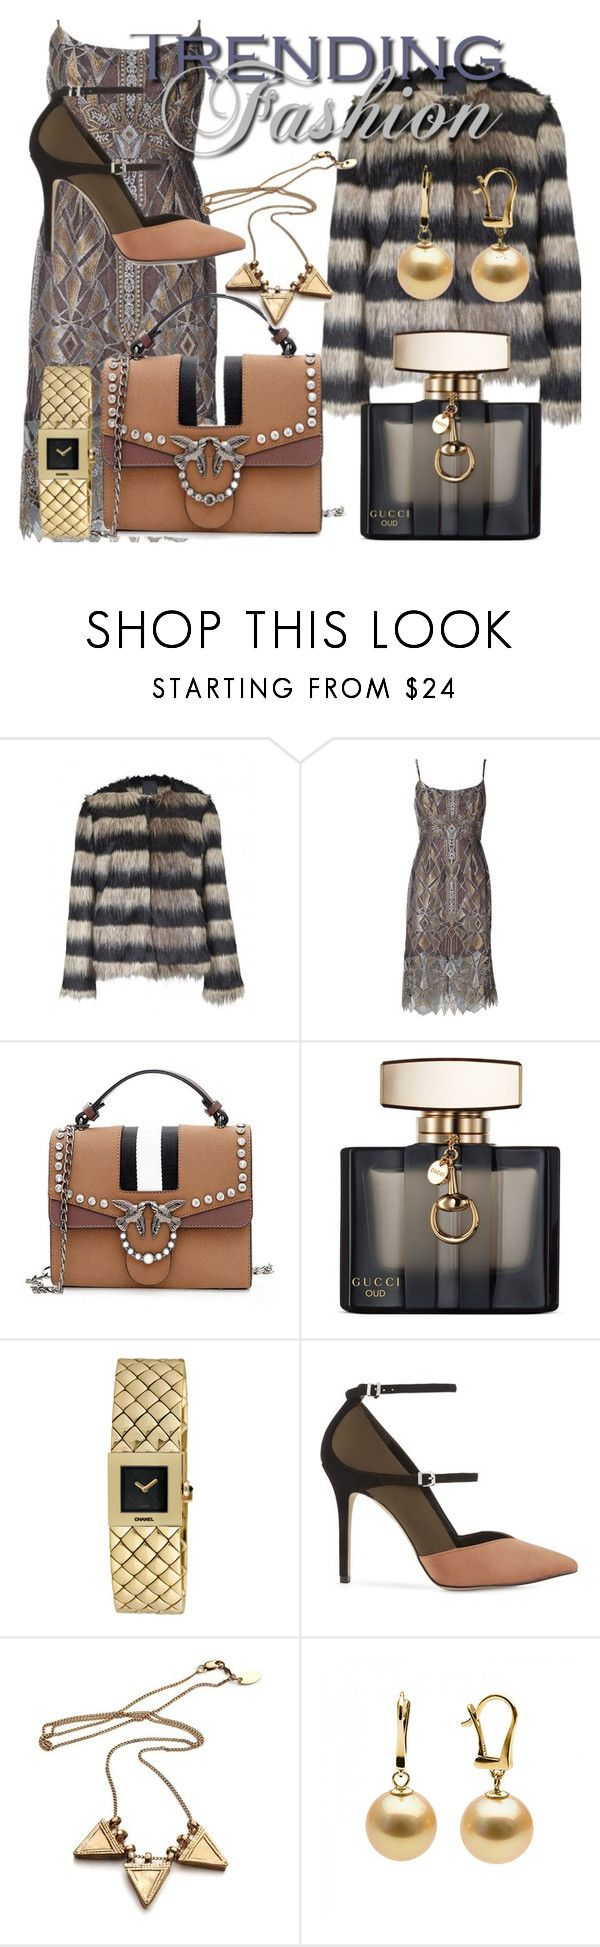 """Fashion Trending"" by drahuschka ❤ liked on Polyvore featuring Ichi, BCBGMAXAZRIA, Gucci, Chanel and Reiss"